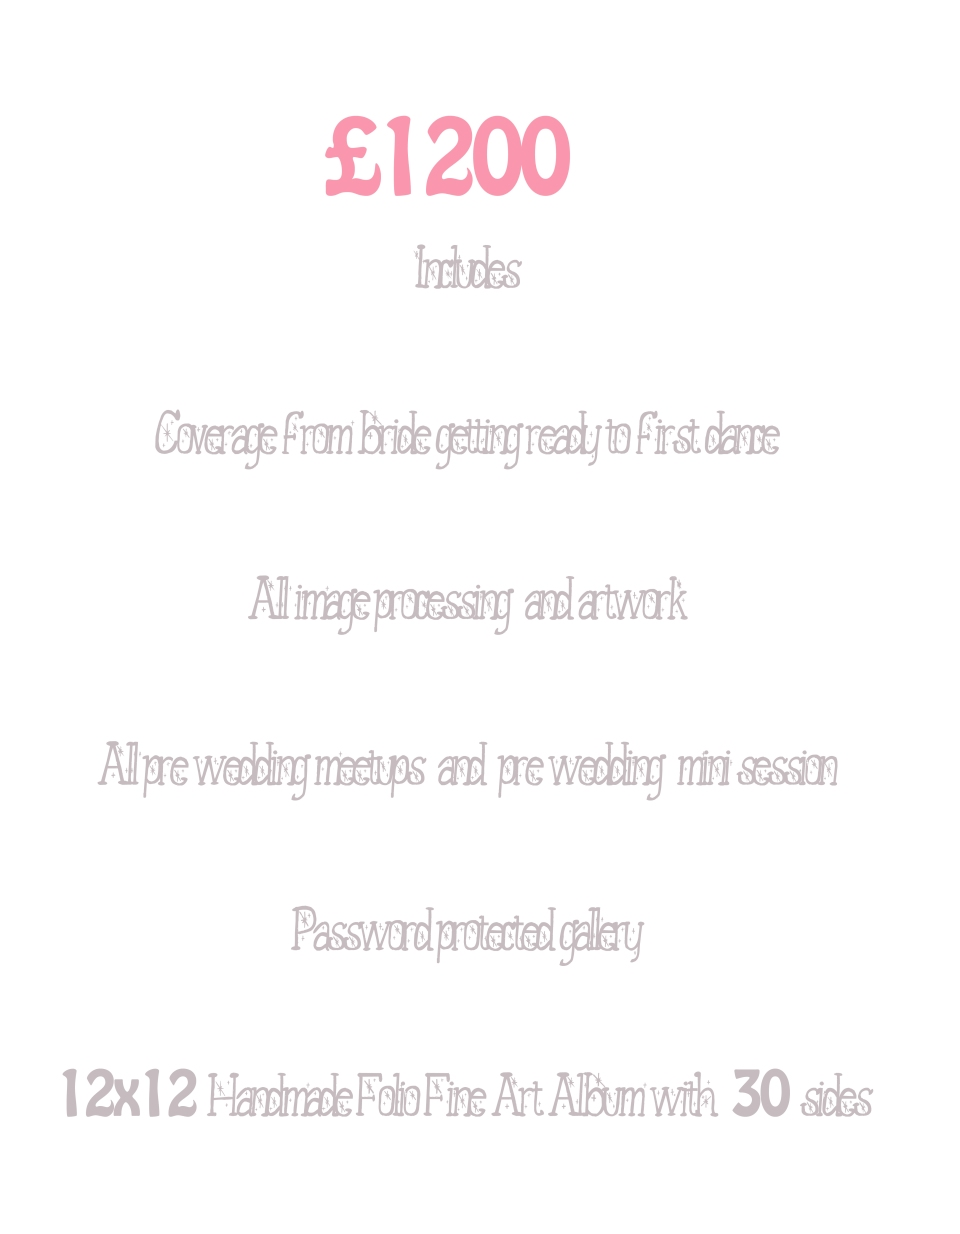 Wedding Price List £1200